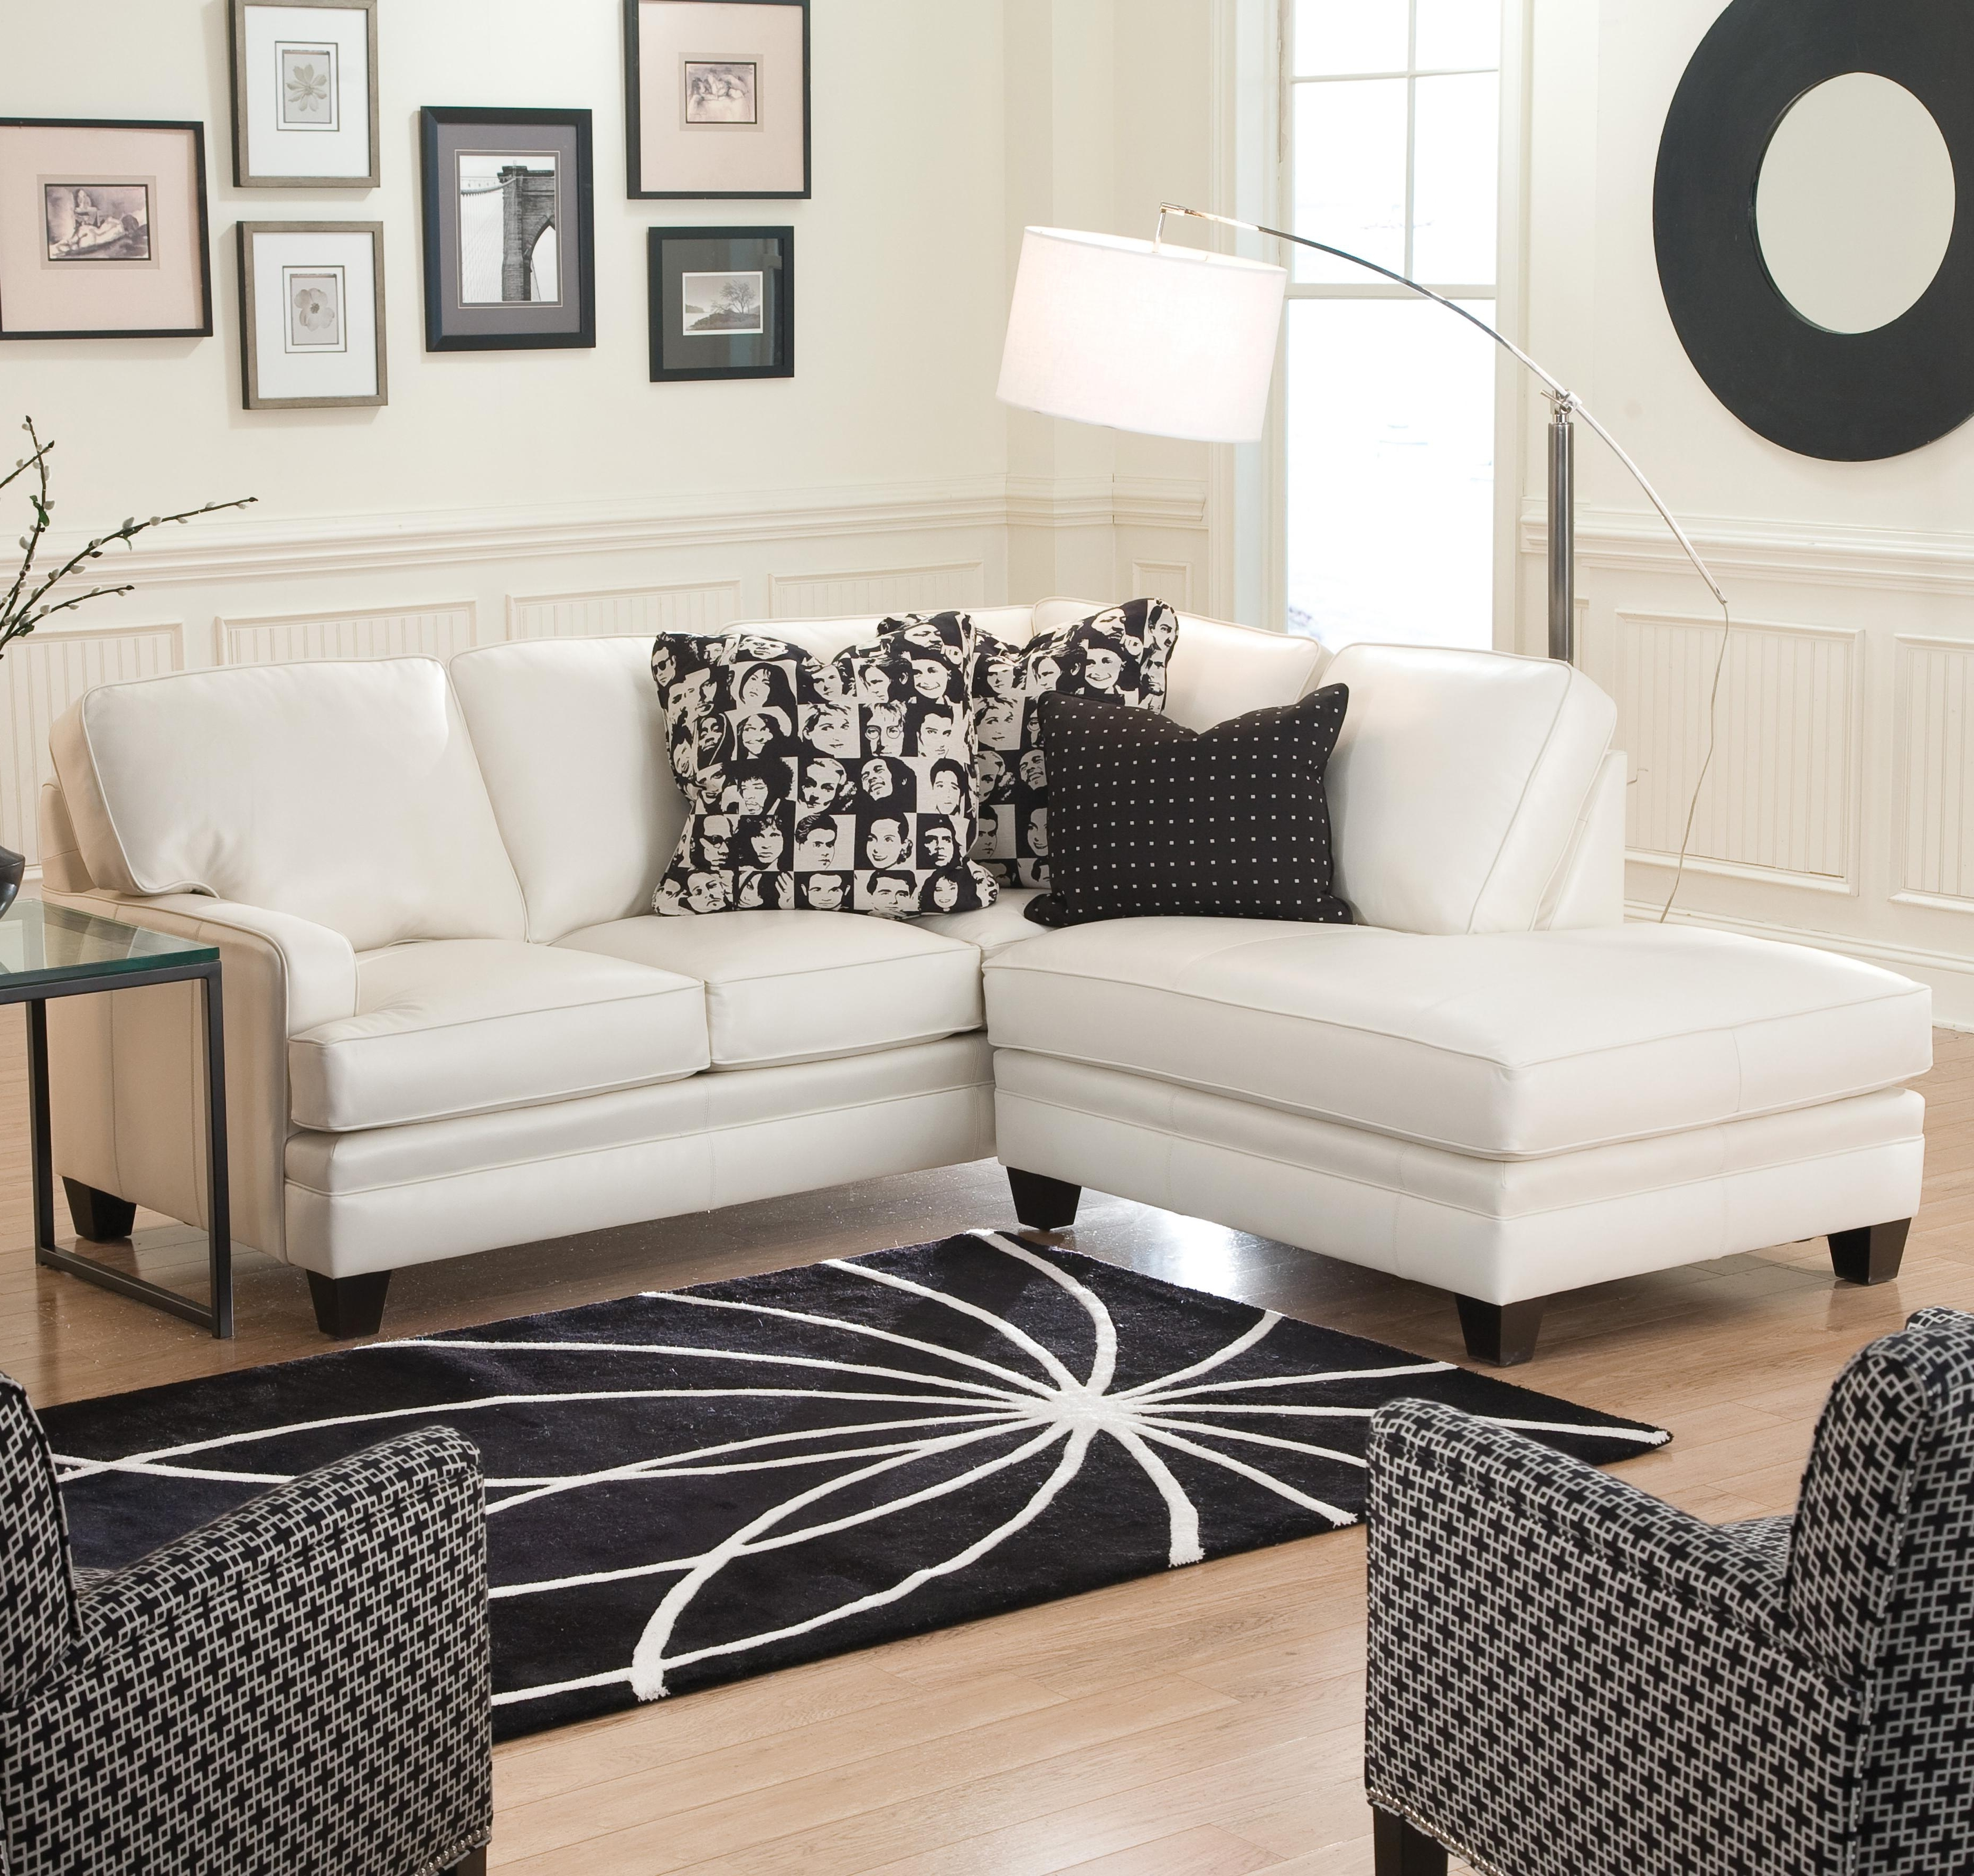 Small Sectional Sofas Intended For Popular Small Sectional Sofa With Contemporary Looksmith Brothers (View 8 of 20)